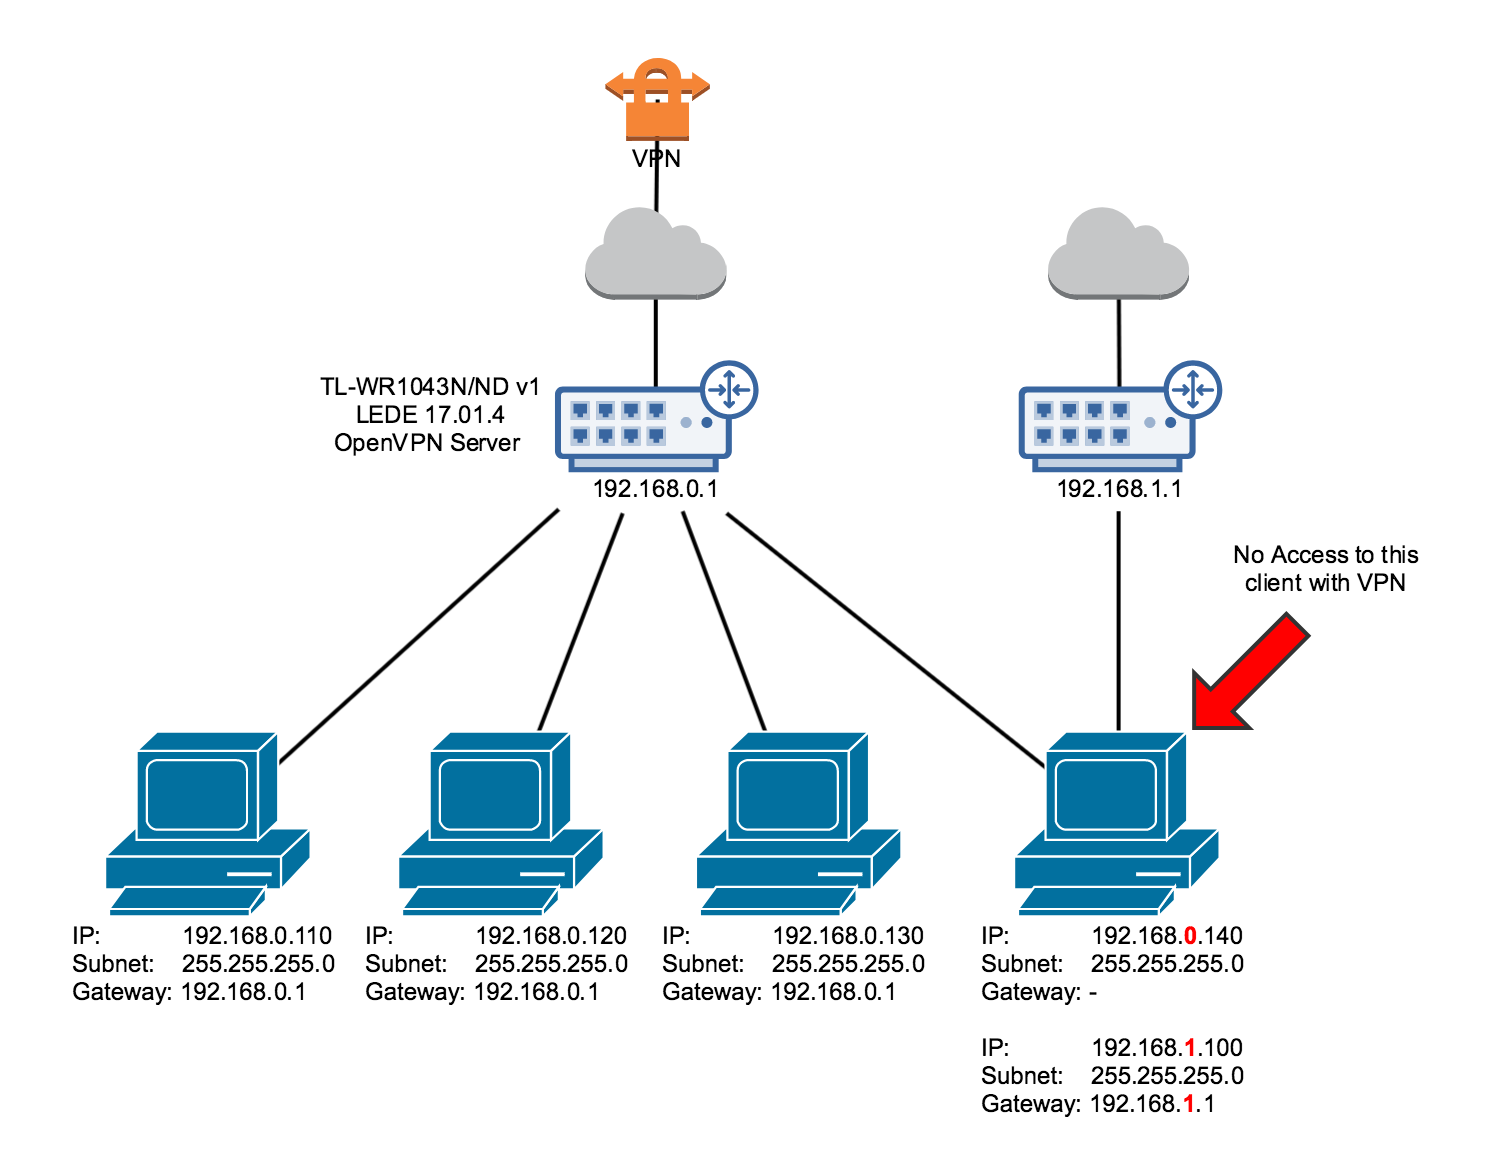 OpenVPN connection, cannot ping/access one client - Network